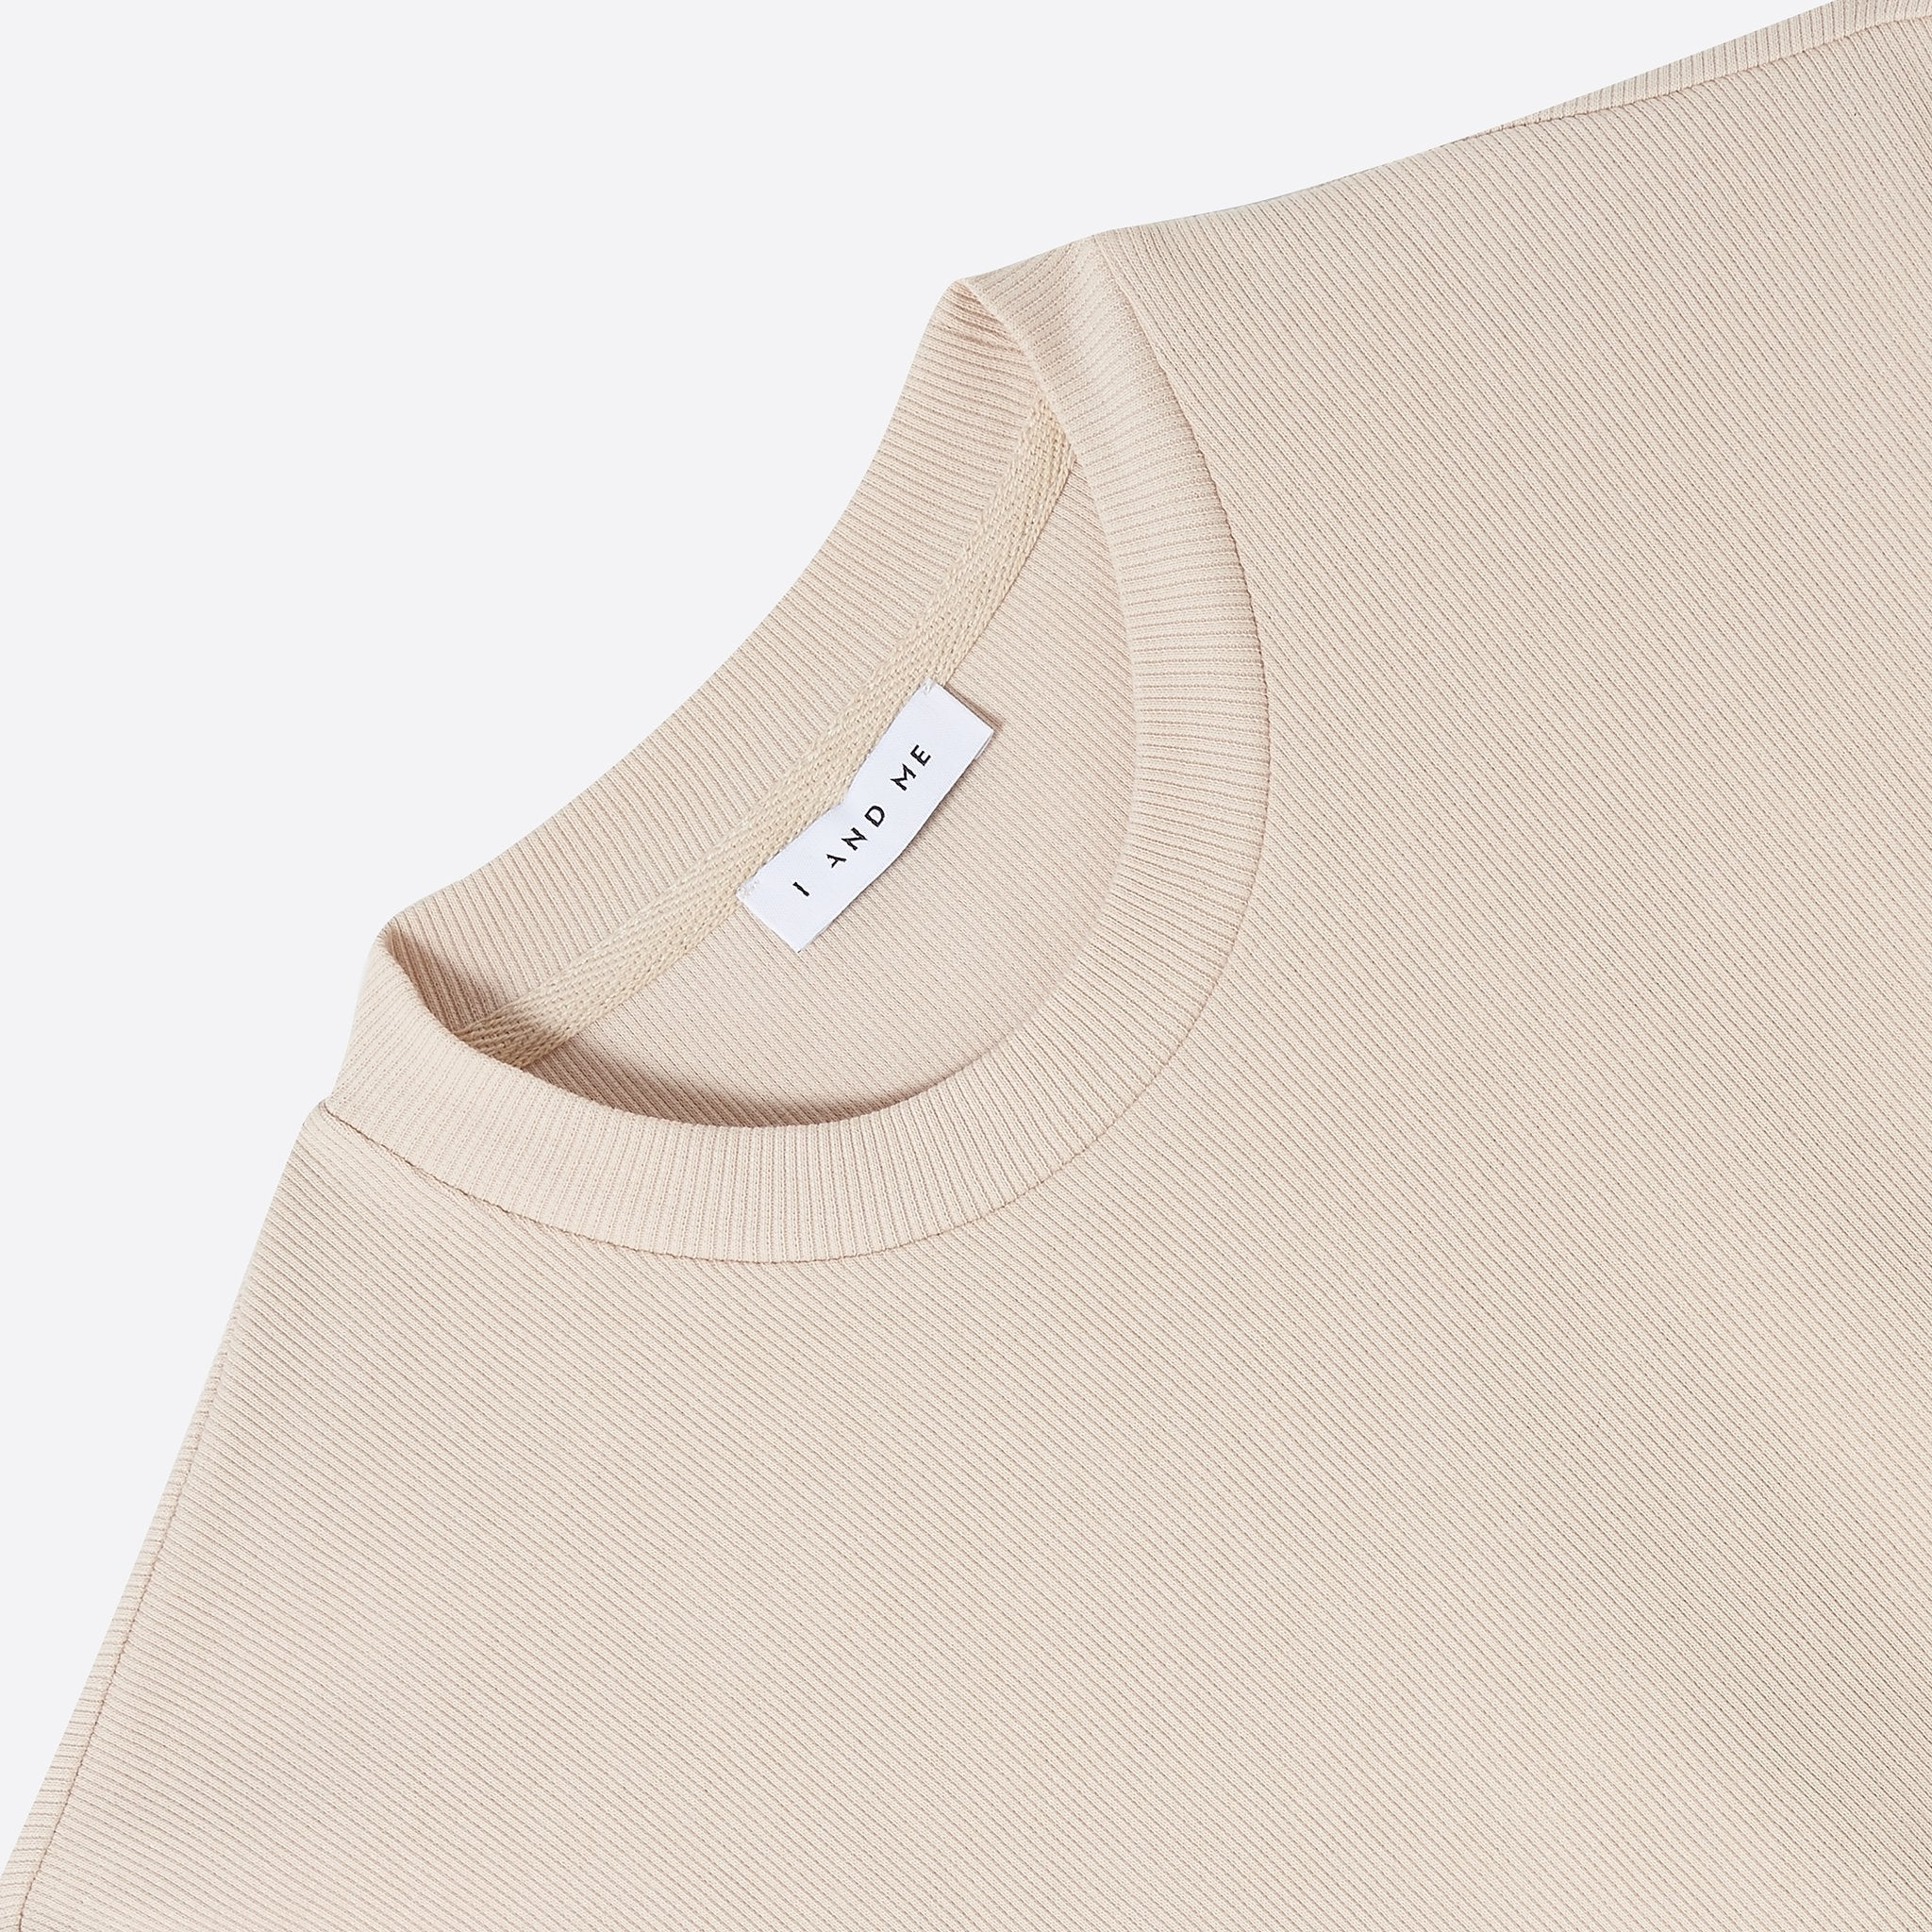 I AND ME - Essential Tee - Nude